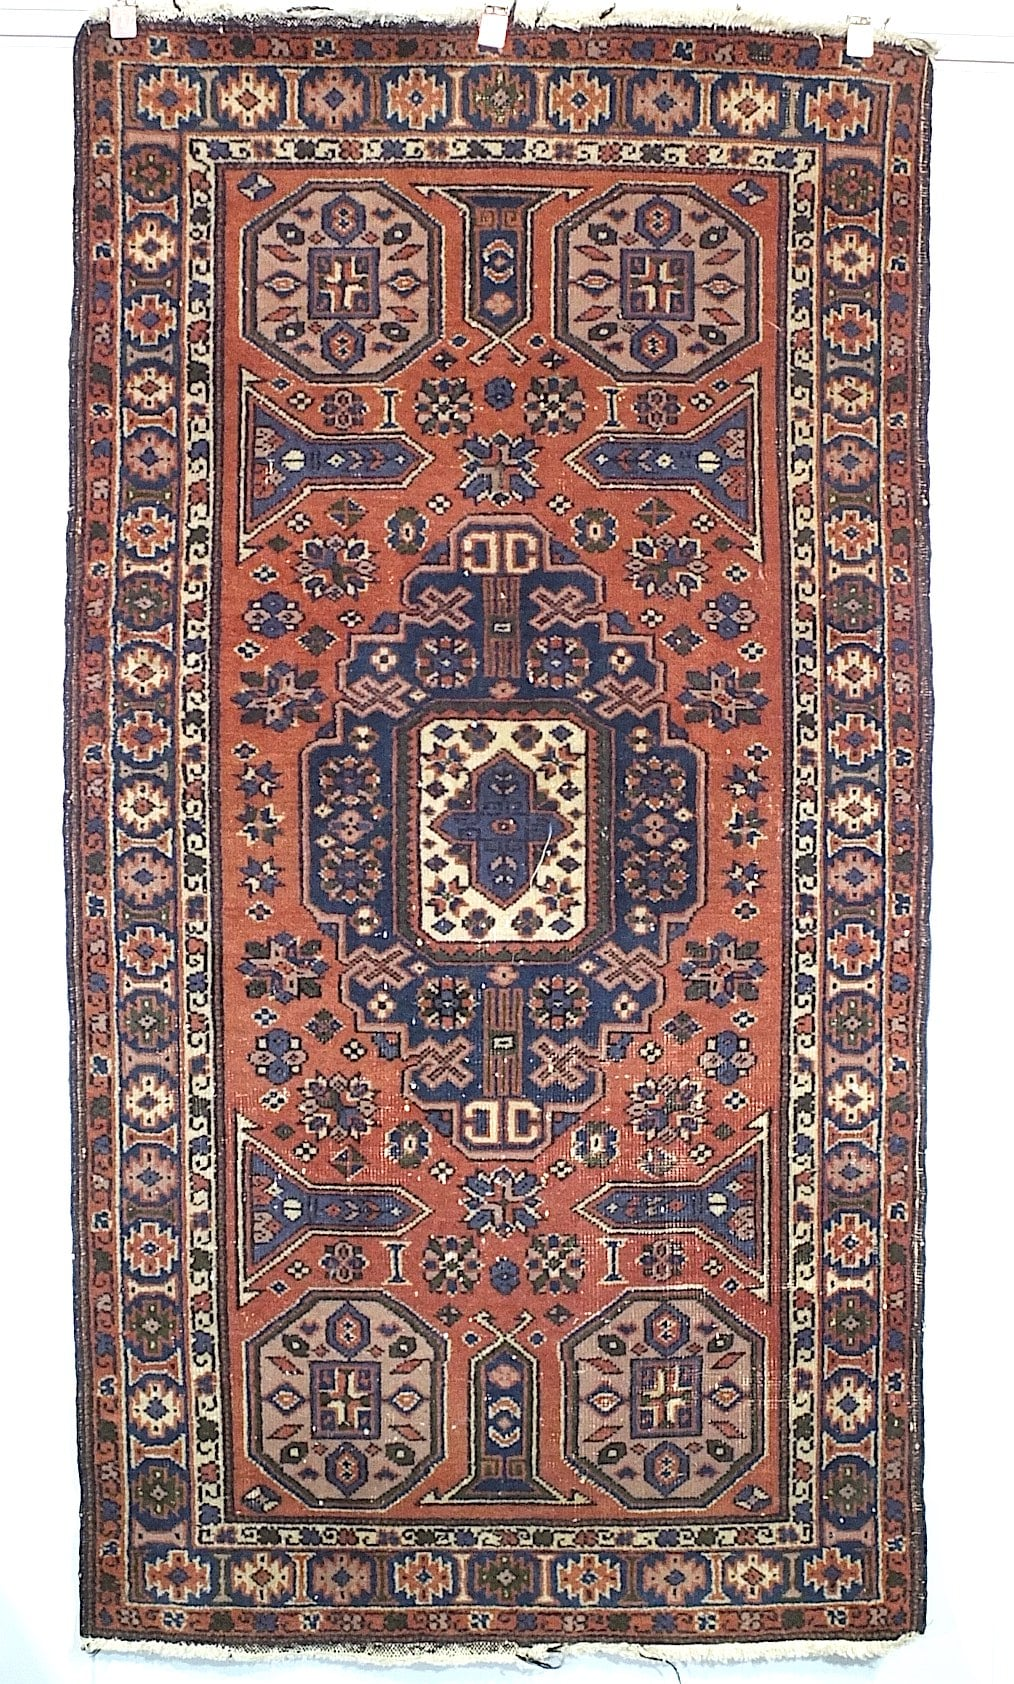 'Caucasian Hand Knotted Wool Pile Rug, Mid 20th Century'